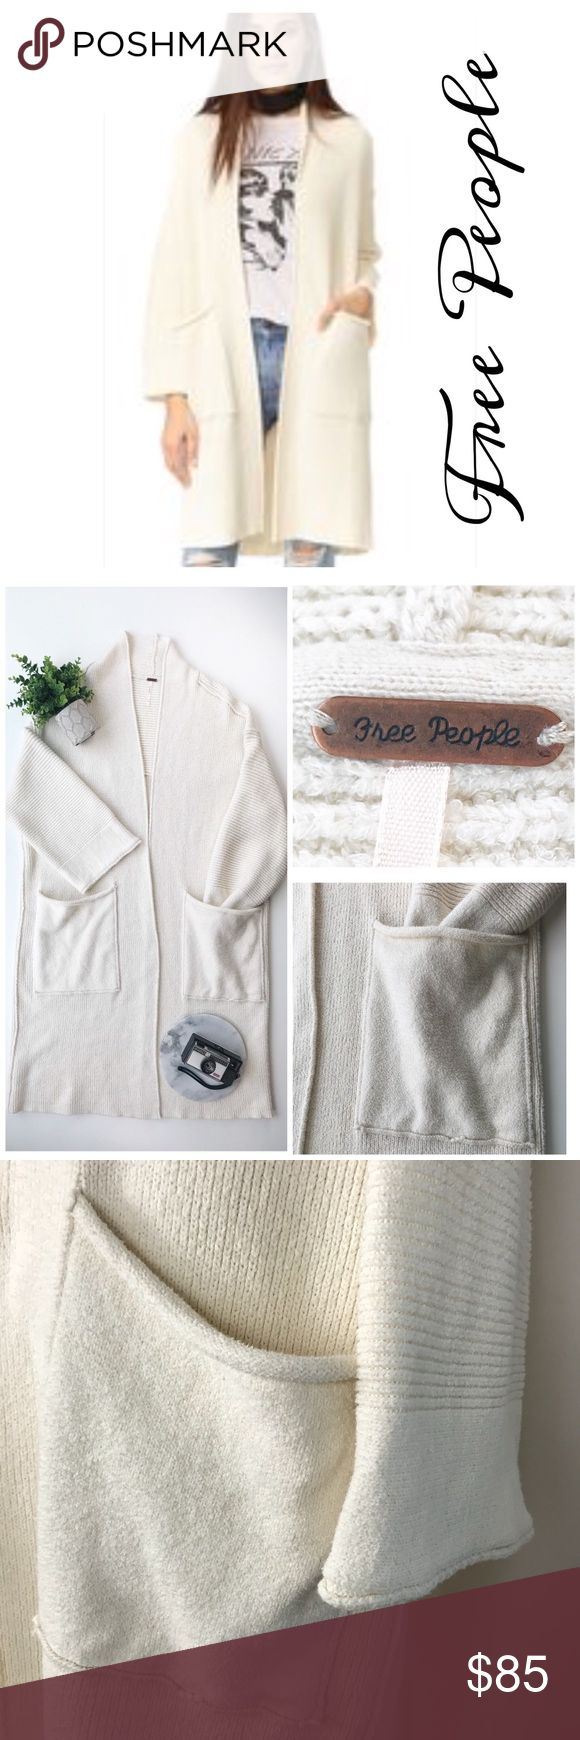 """Free People By The Campfire Long Cardigan Sweater Free People 'By The Campfire' long cardigan sweater in cream. Open front, roomy pockets, cozy. 56% cotton 44% nylon Size Large  Underarm to underarm: 27"""" Length, shoulder seam to bottom hem: 41"""" Inventory S26 Free People Sweaters Cardigans"""